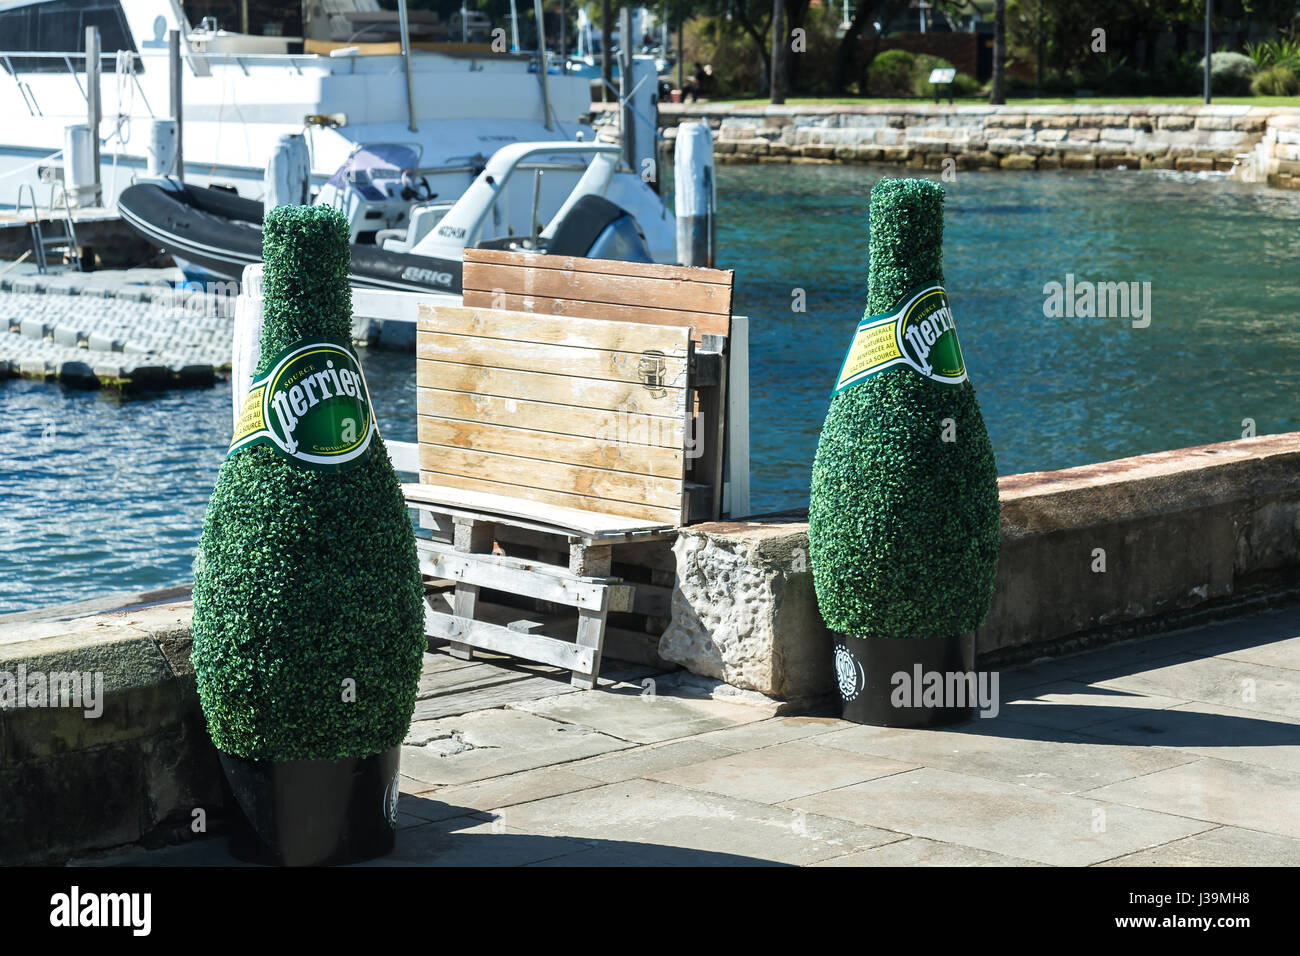 Giant perrier water bottles made of bush leaves at Elizabeth Bay, Sydney. - Stock Image